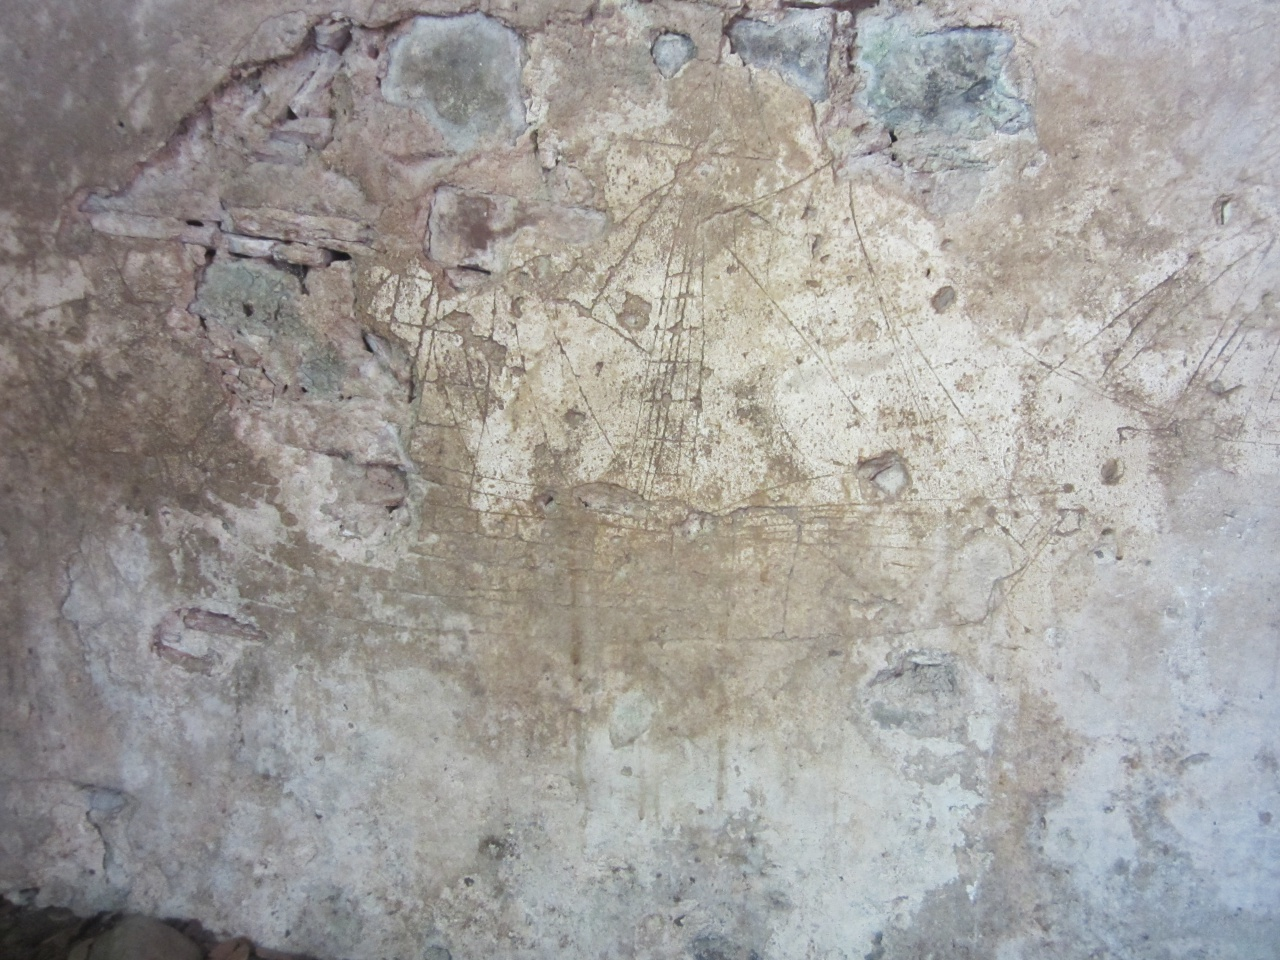 Graffiti de navire, îlet Chancel